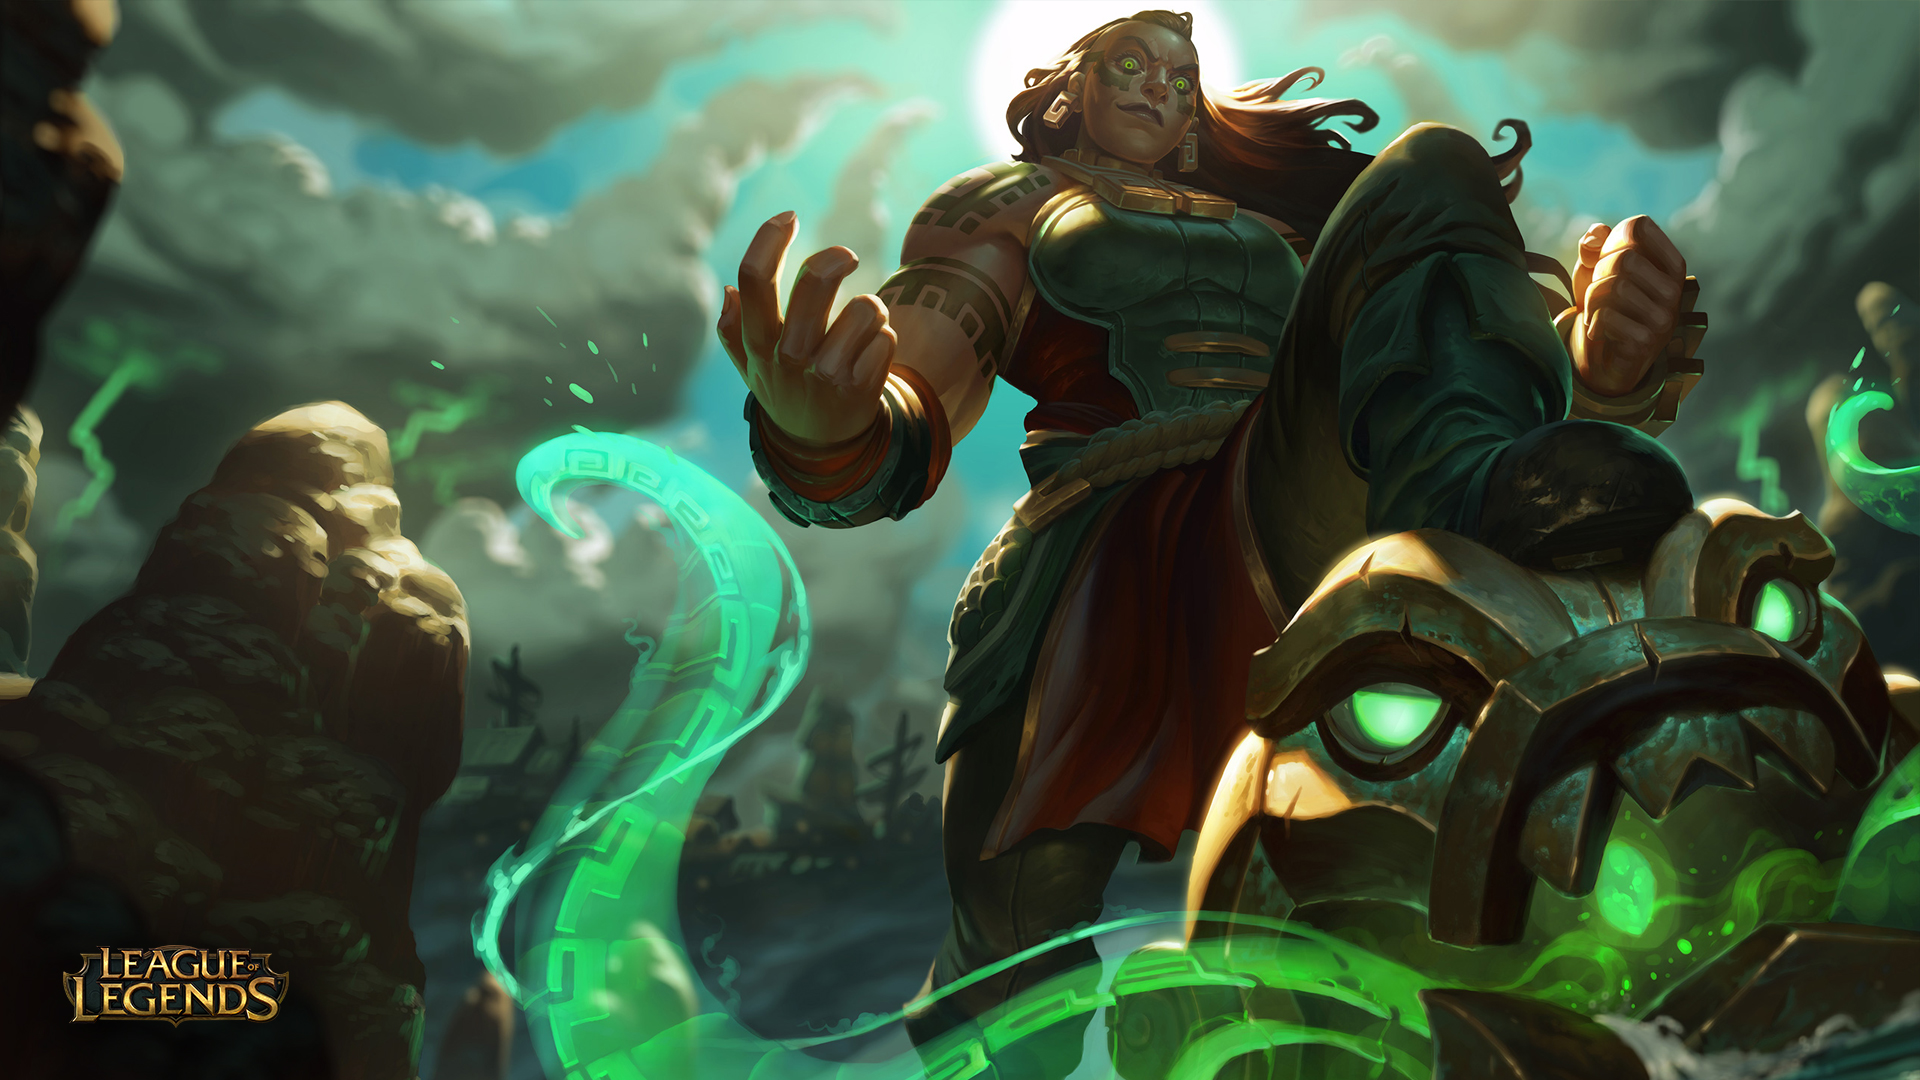 Illaoi League Of Legends Wallpapers HD 1920x1080